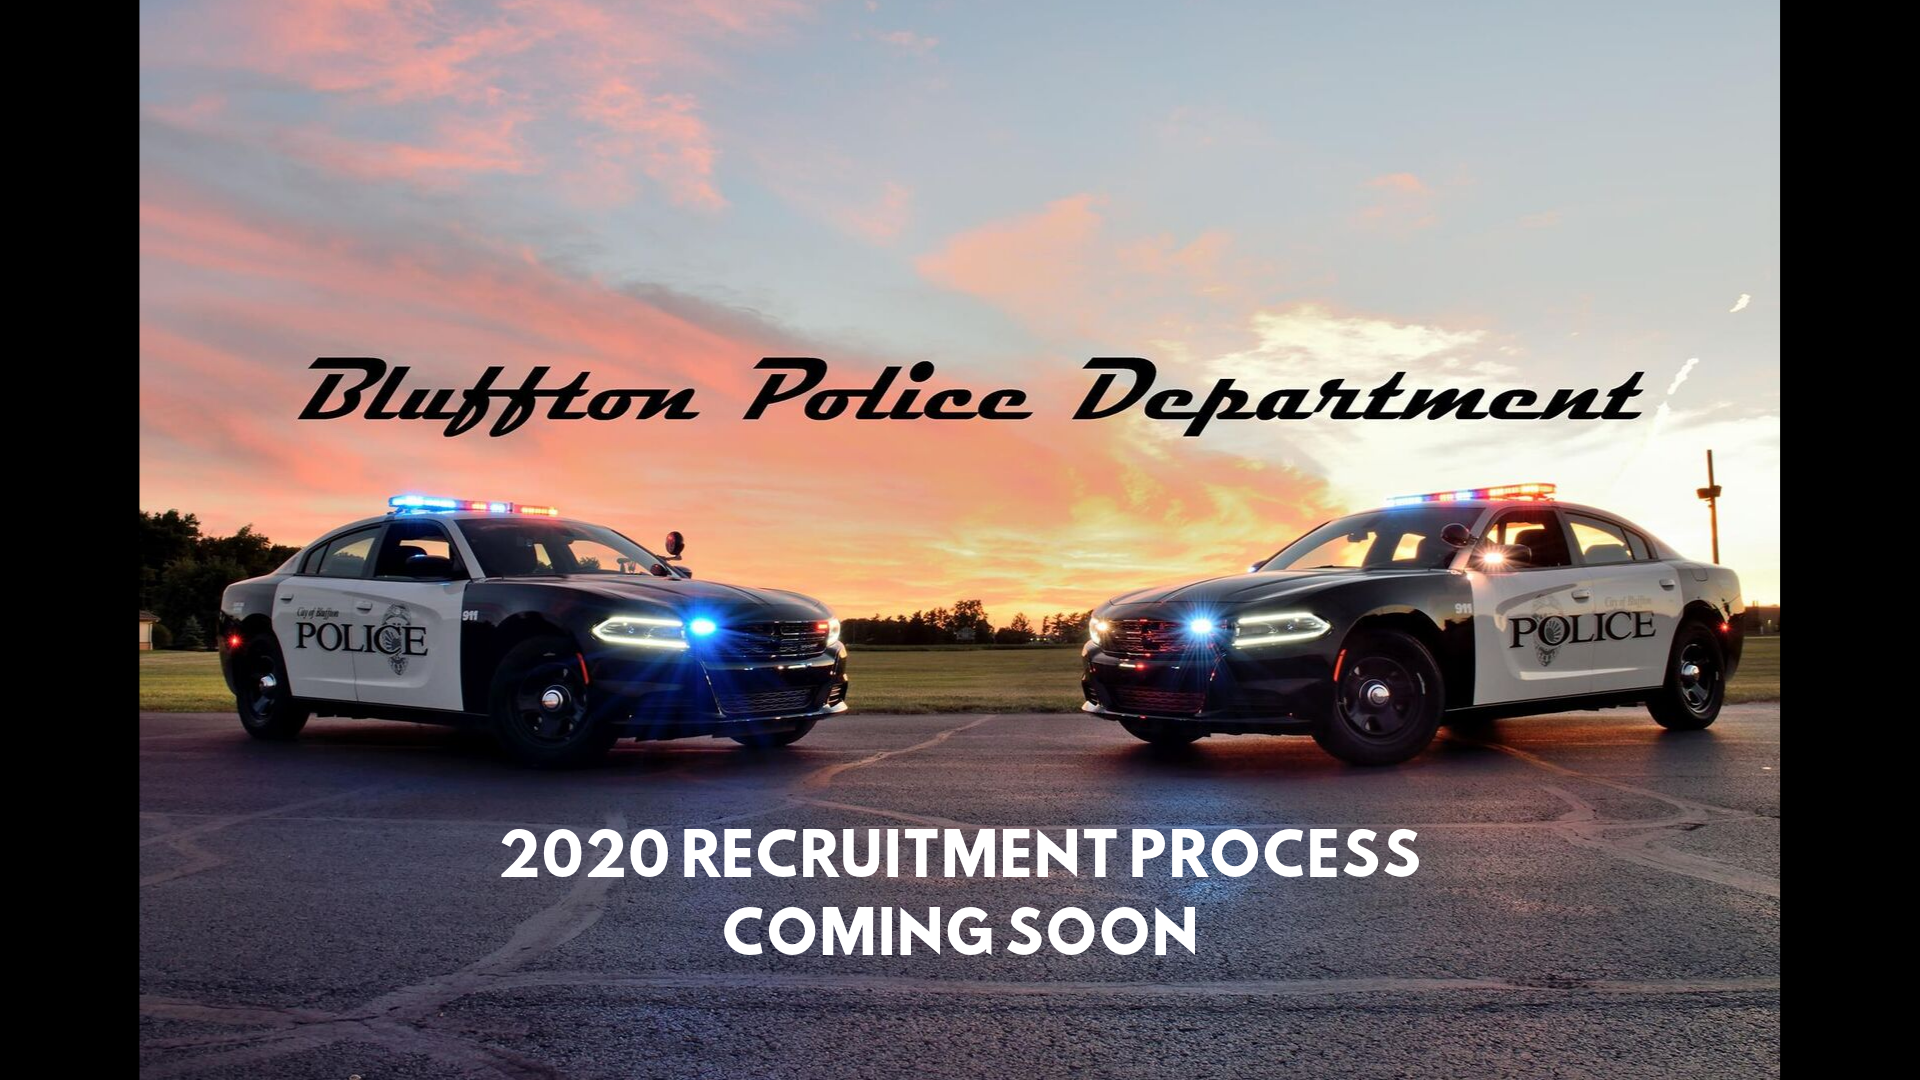 Bluffton Police Department, IN